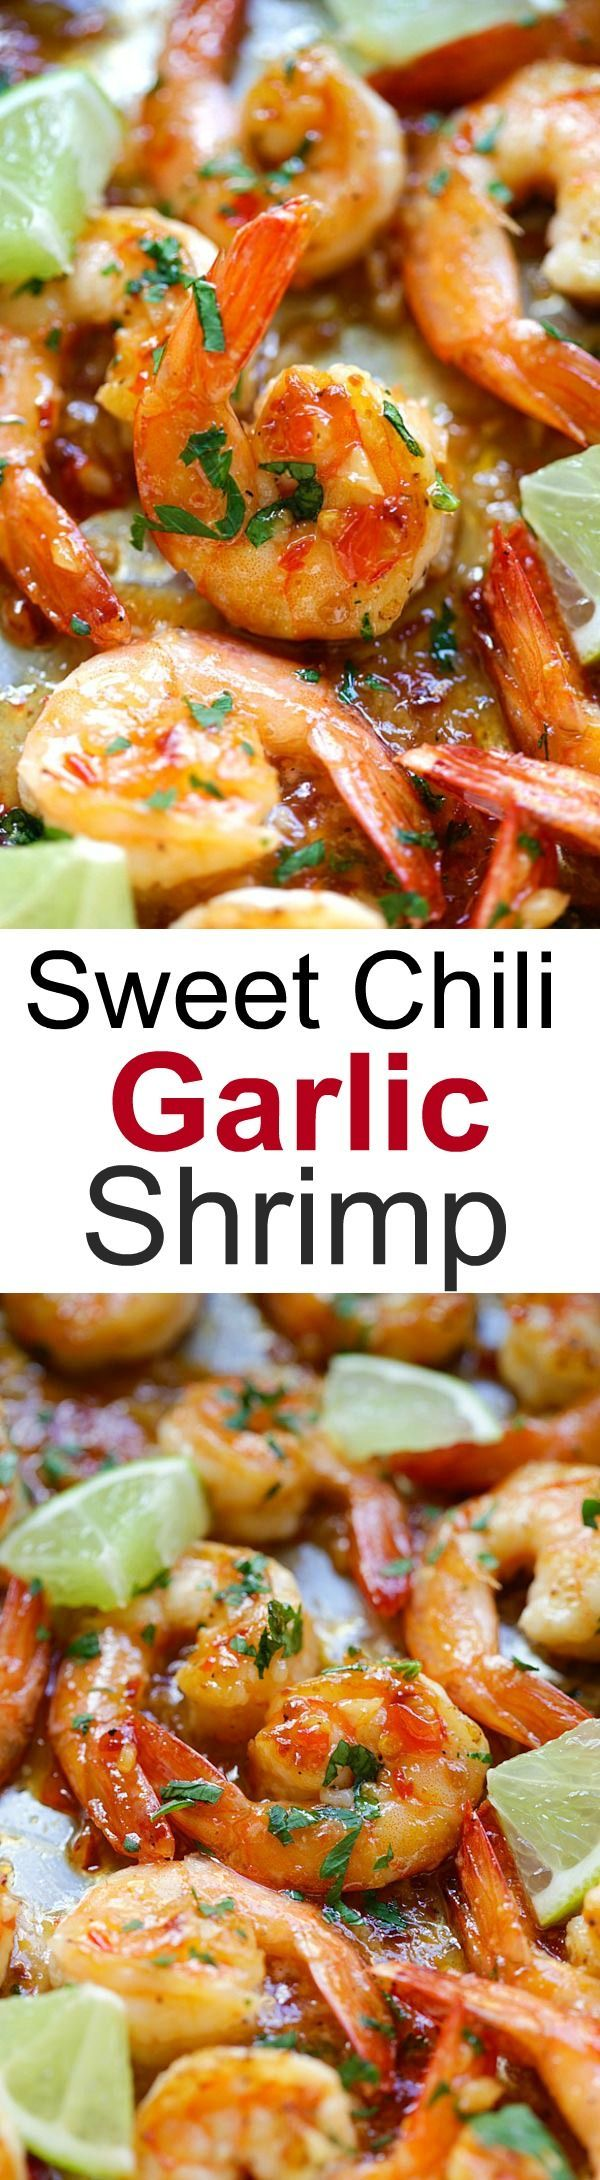 Sweet chili-garlic shrimp – easiest and most delicious shrimp you can make in 15 mins. Sticky sweet, savory with a little heat. SO good! | rasamalaysia.com